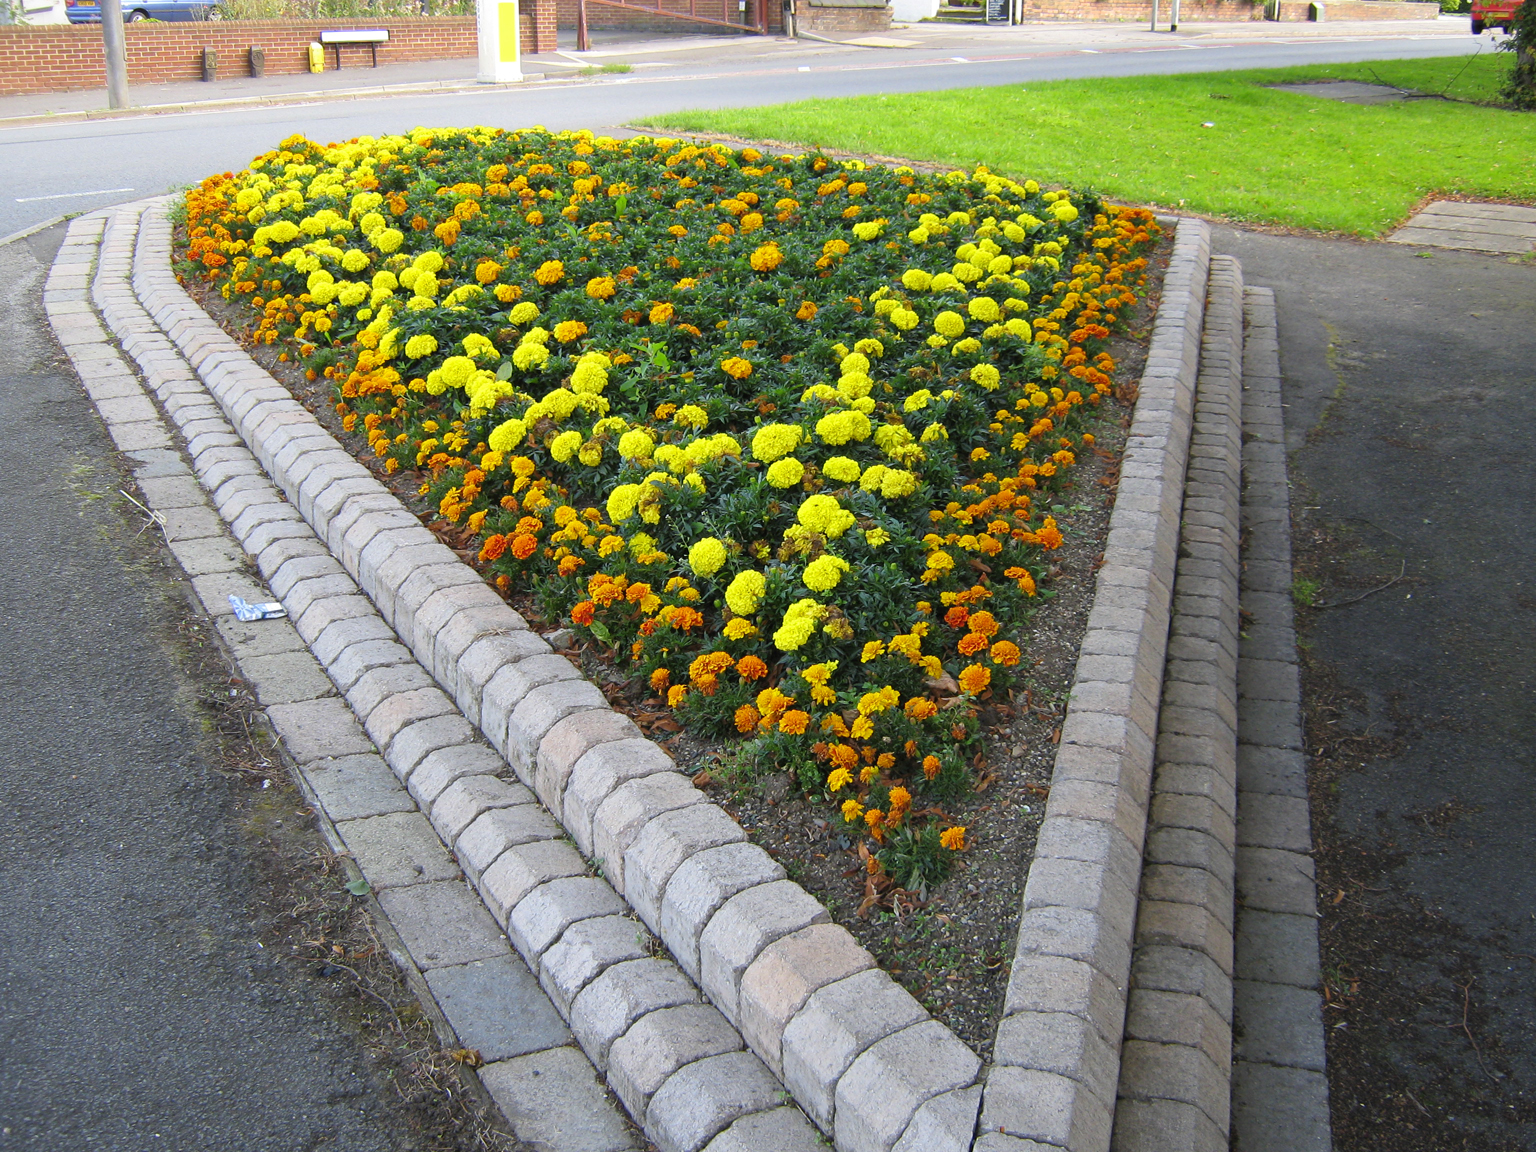 flower-bed-provided-by-broxtowe-borough-council